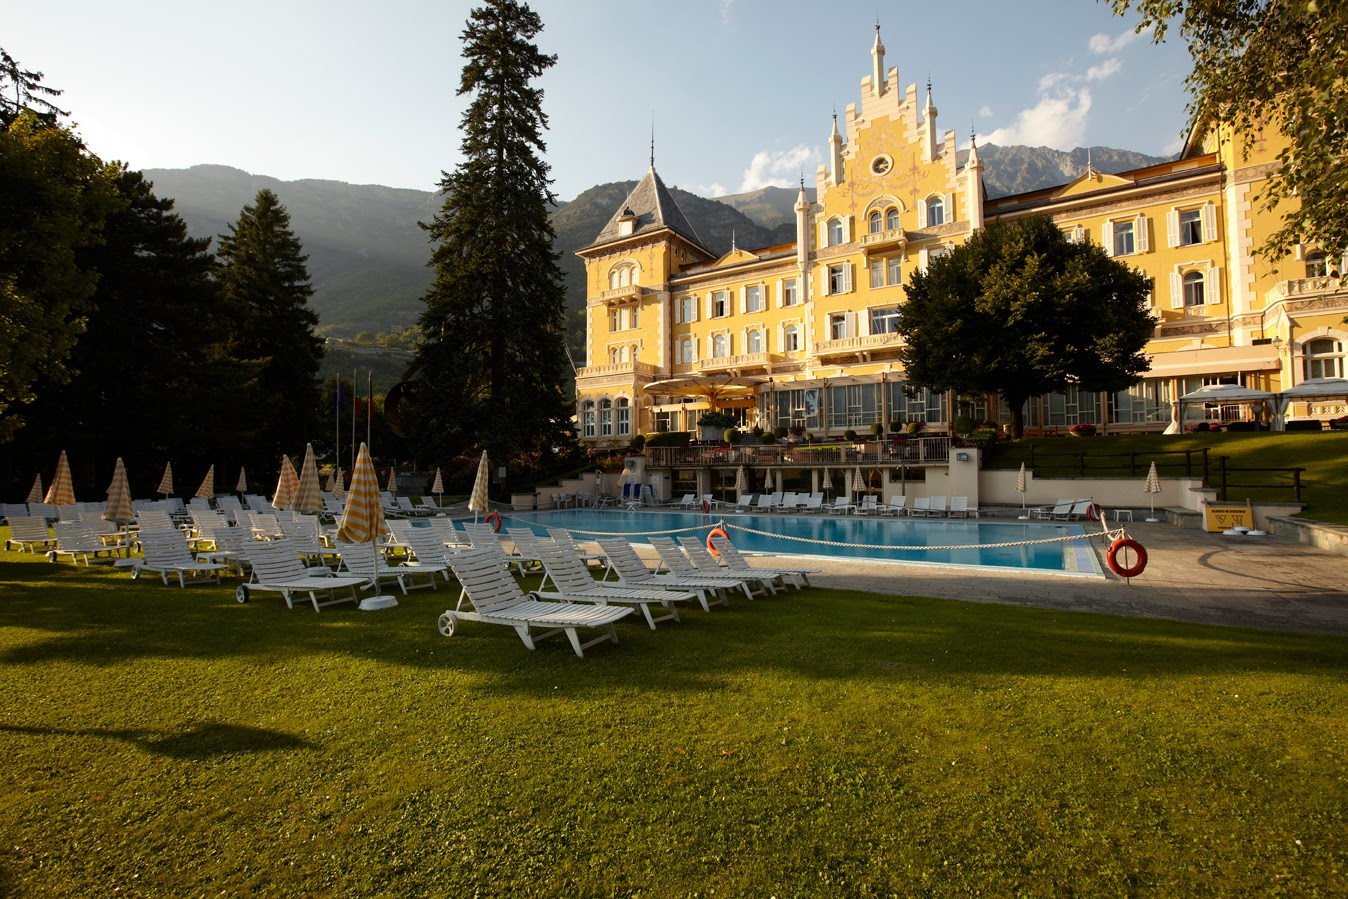 Grand Hotel Billia, come ai tempi della Belle Epoque!